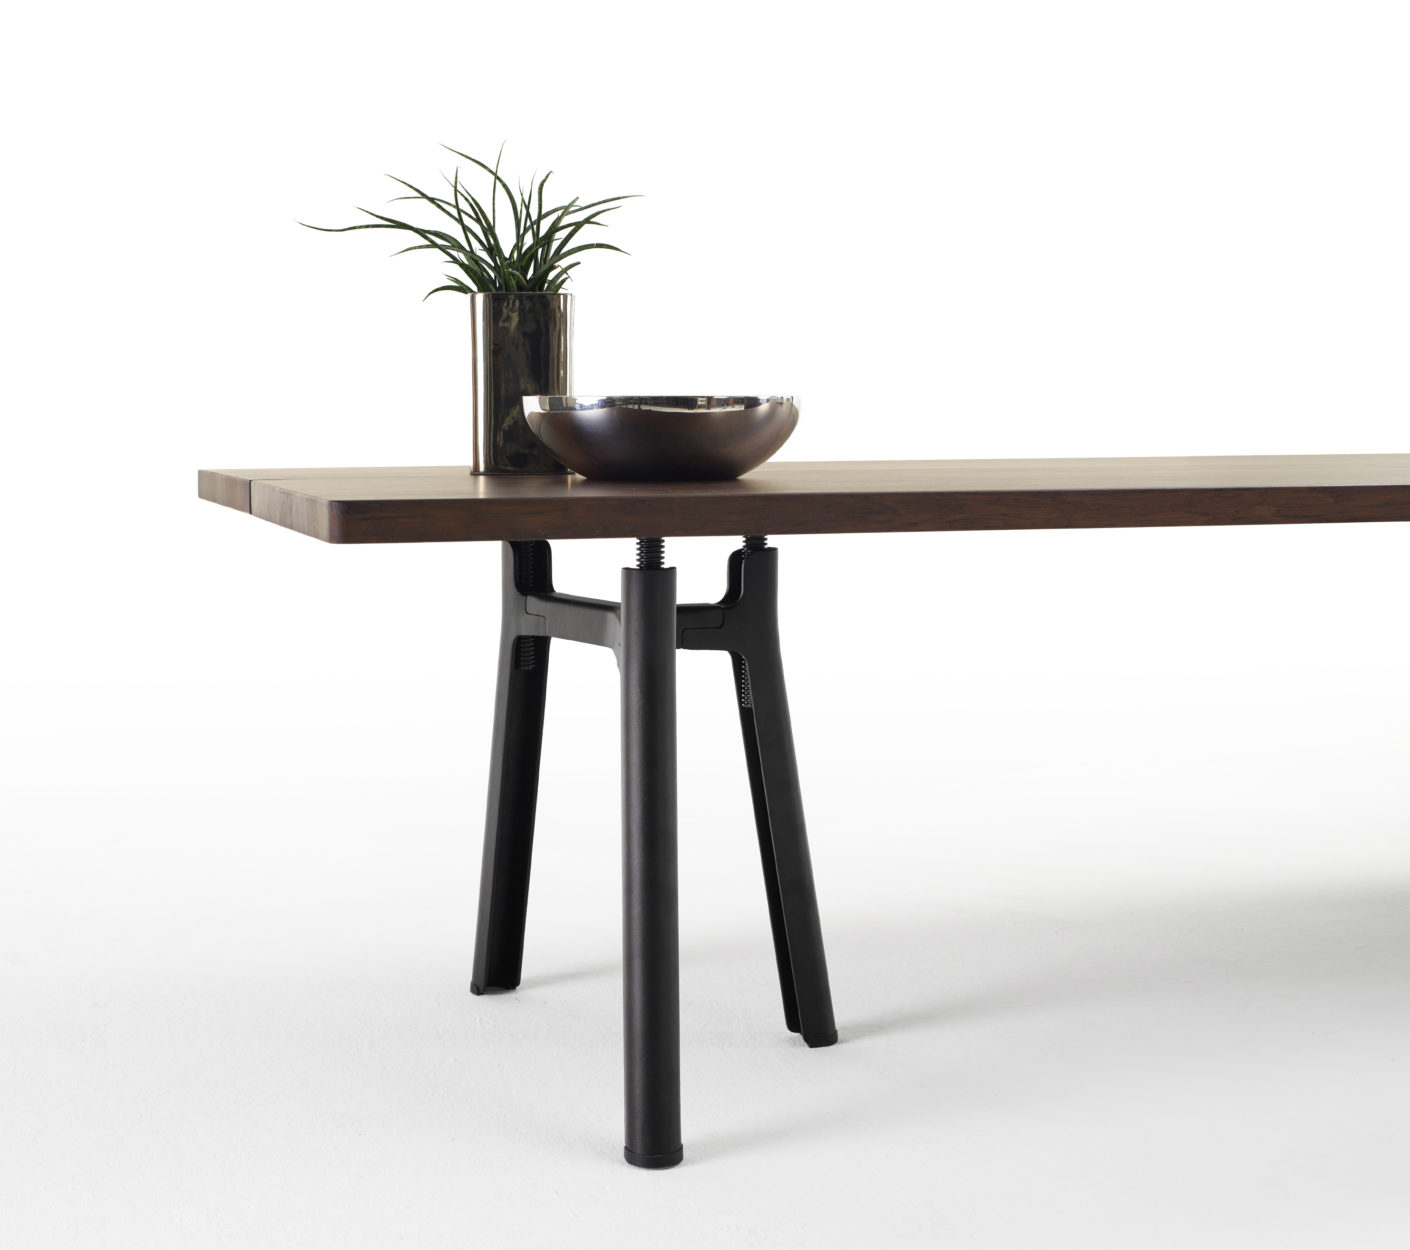 """""""Trestle"""" can be manually adjusted in height by seven centimeters. The table top consists of two parts, which facilitates transport and orientation in the room."""